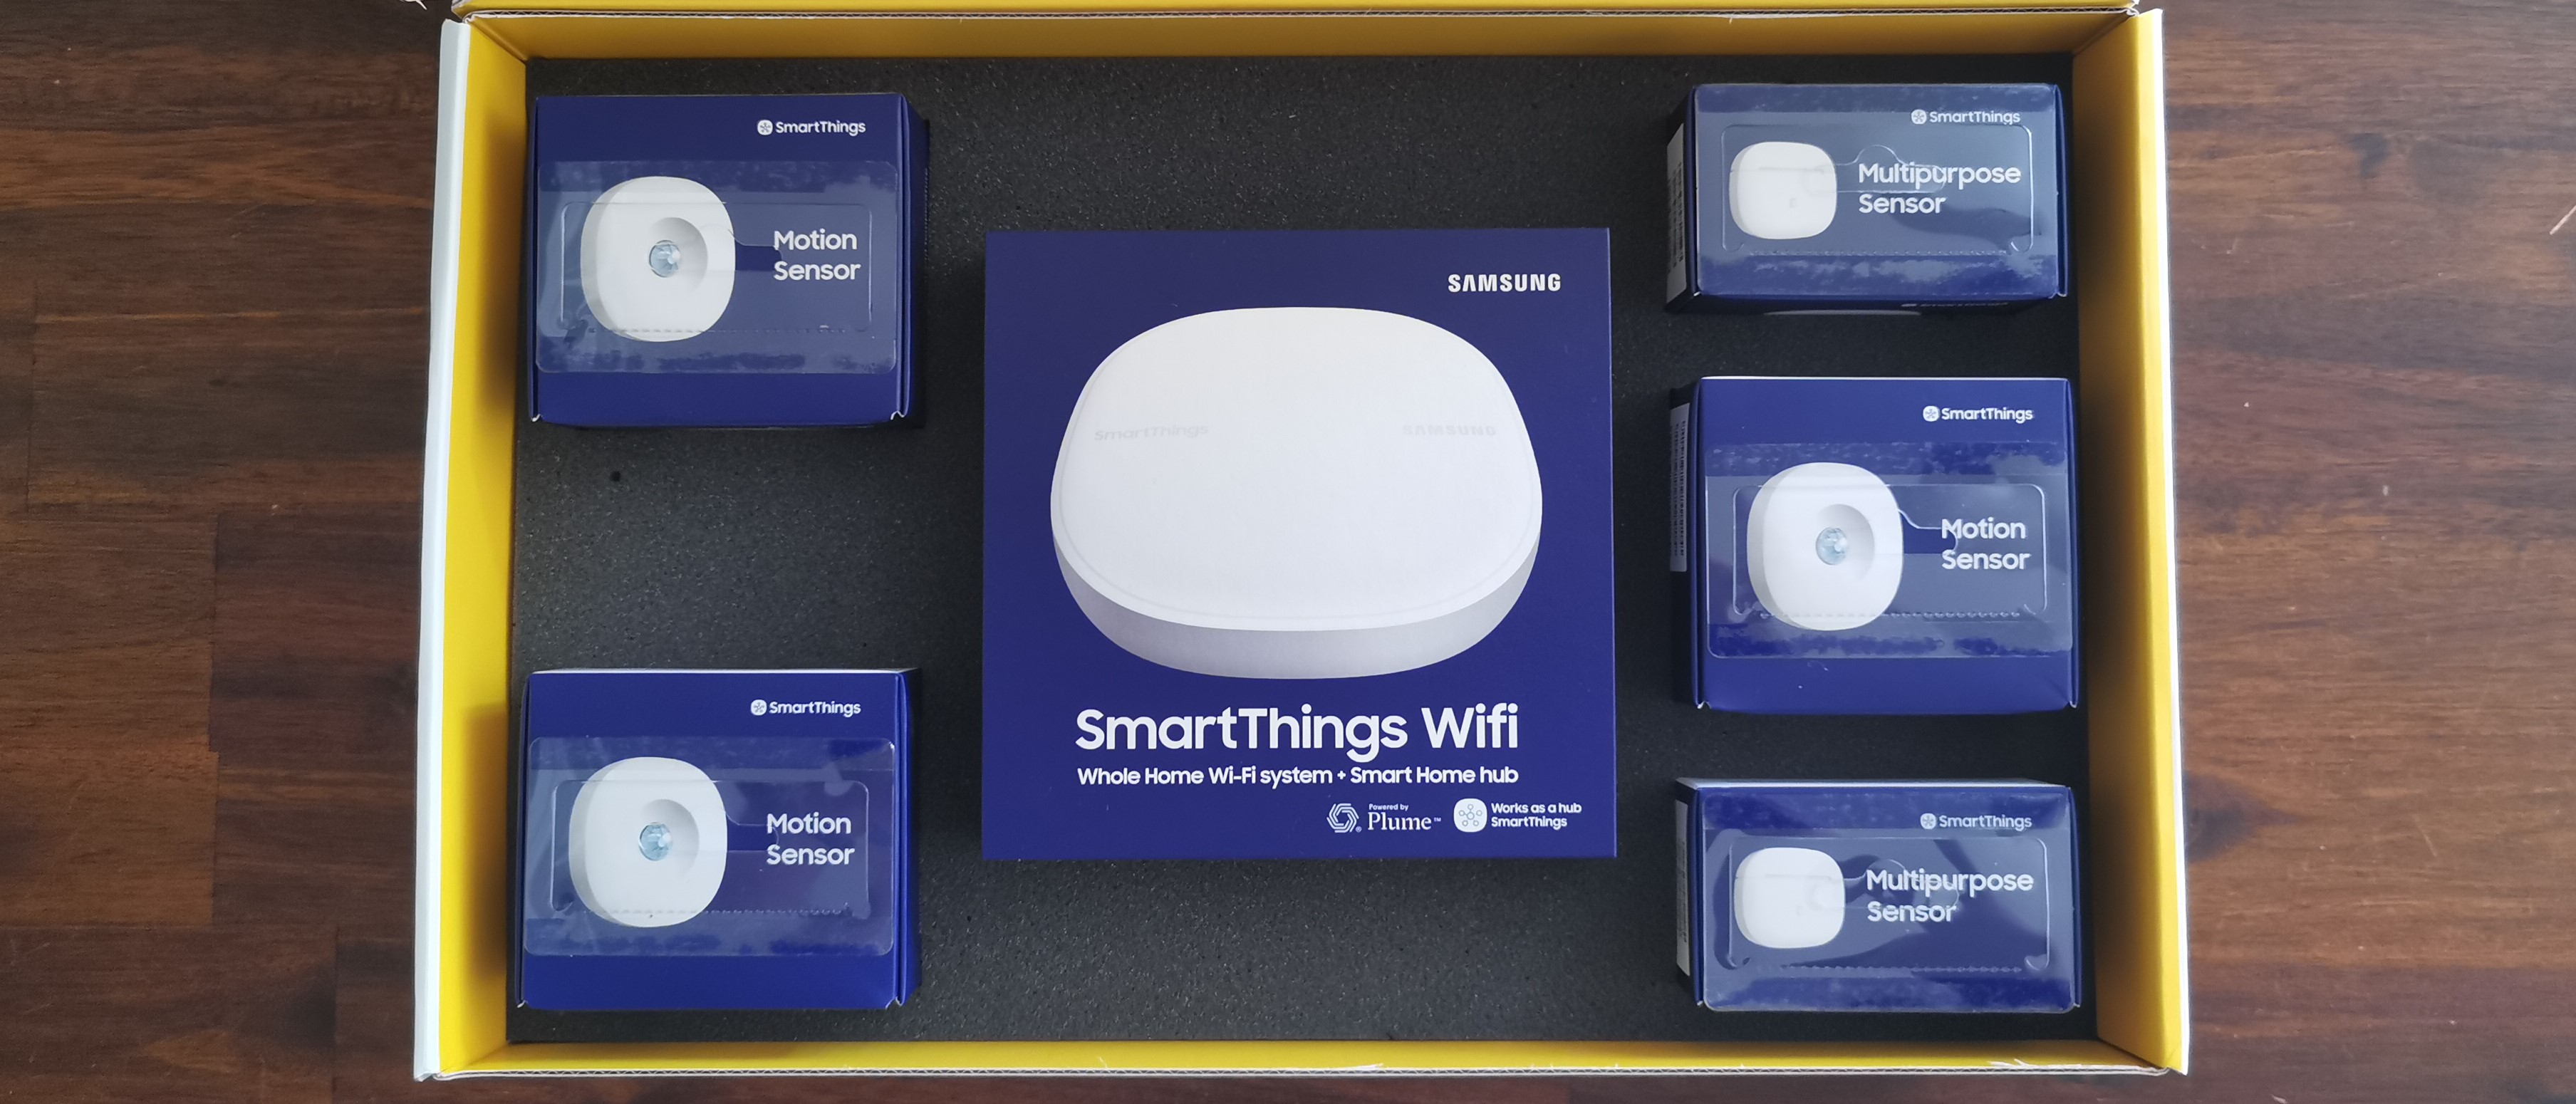 Samsung Smartthings Motion Sensor Battery Replacement